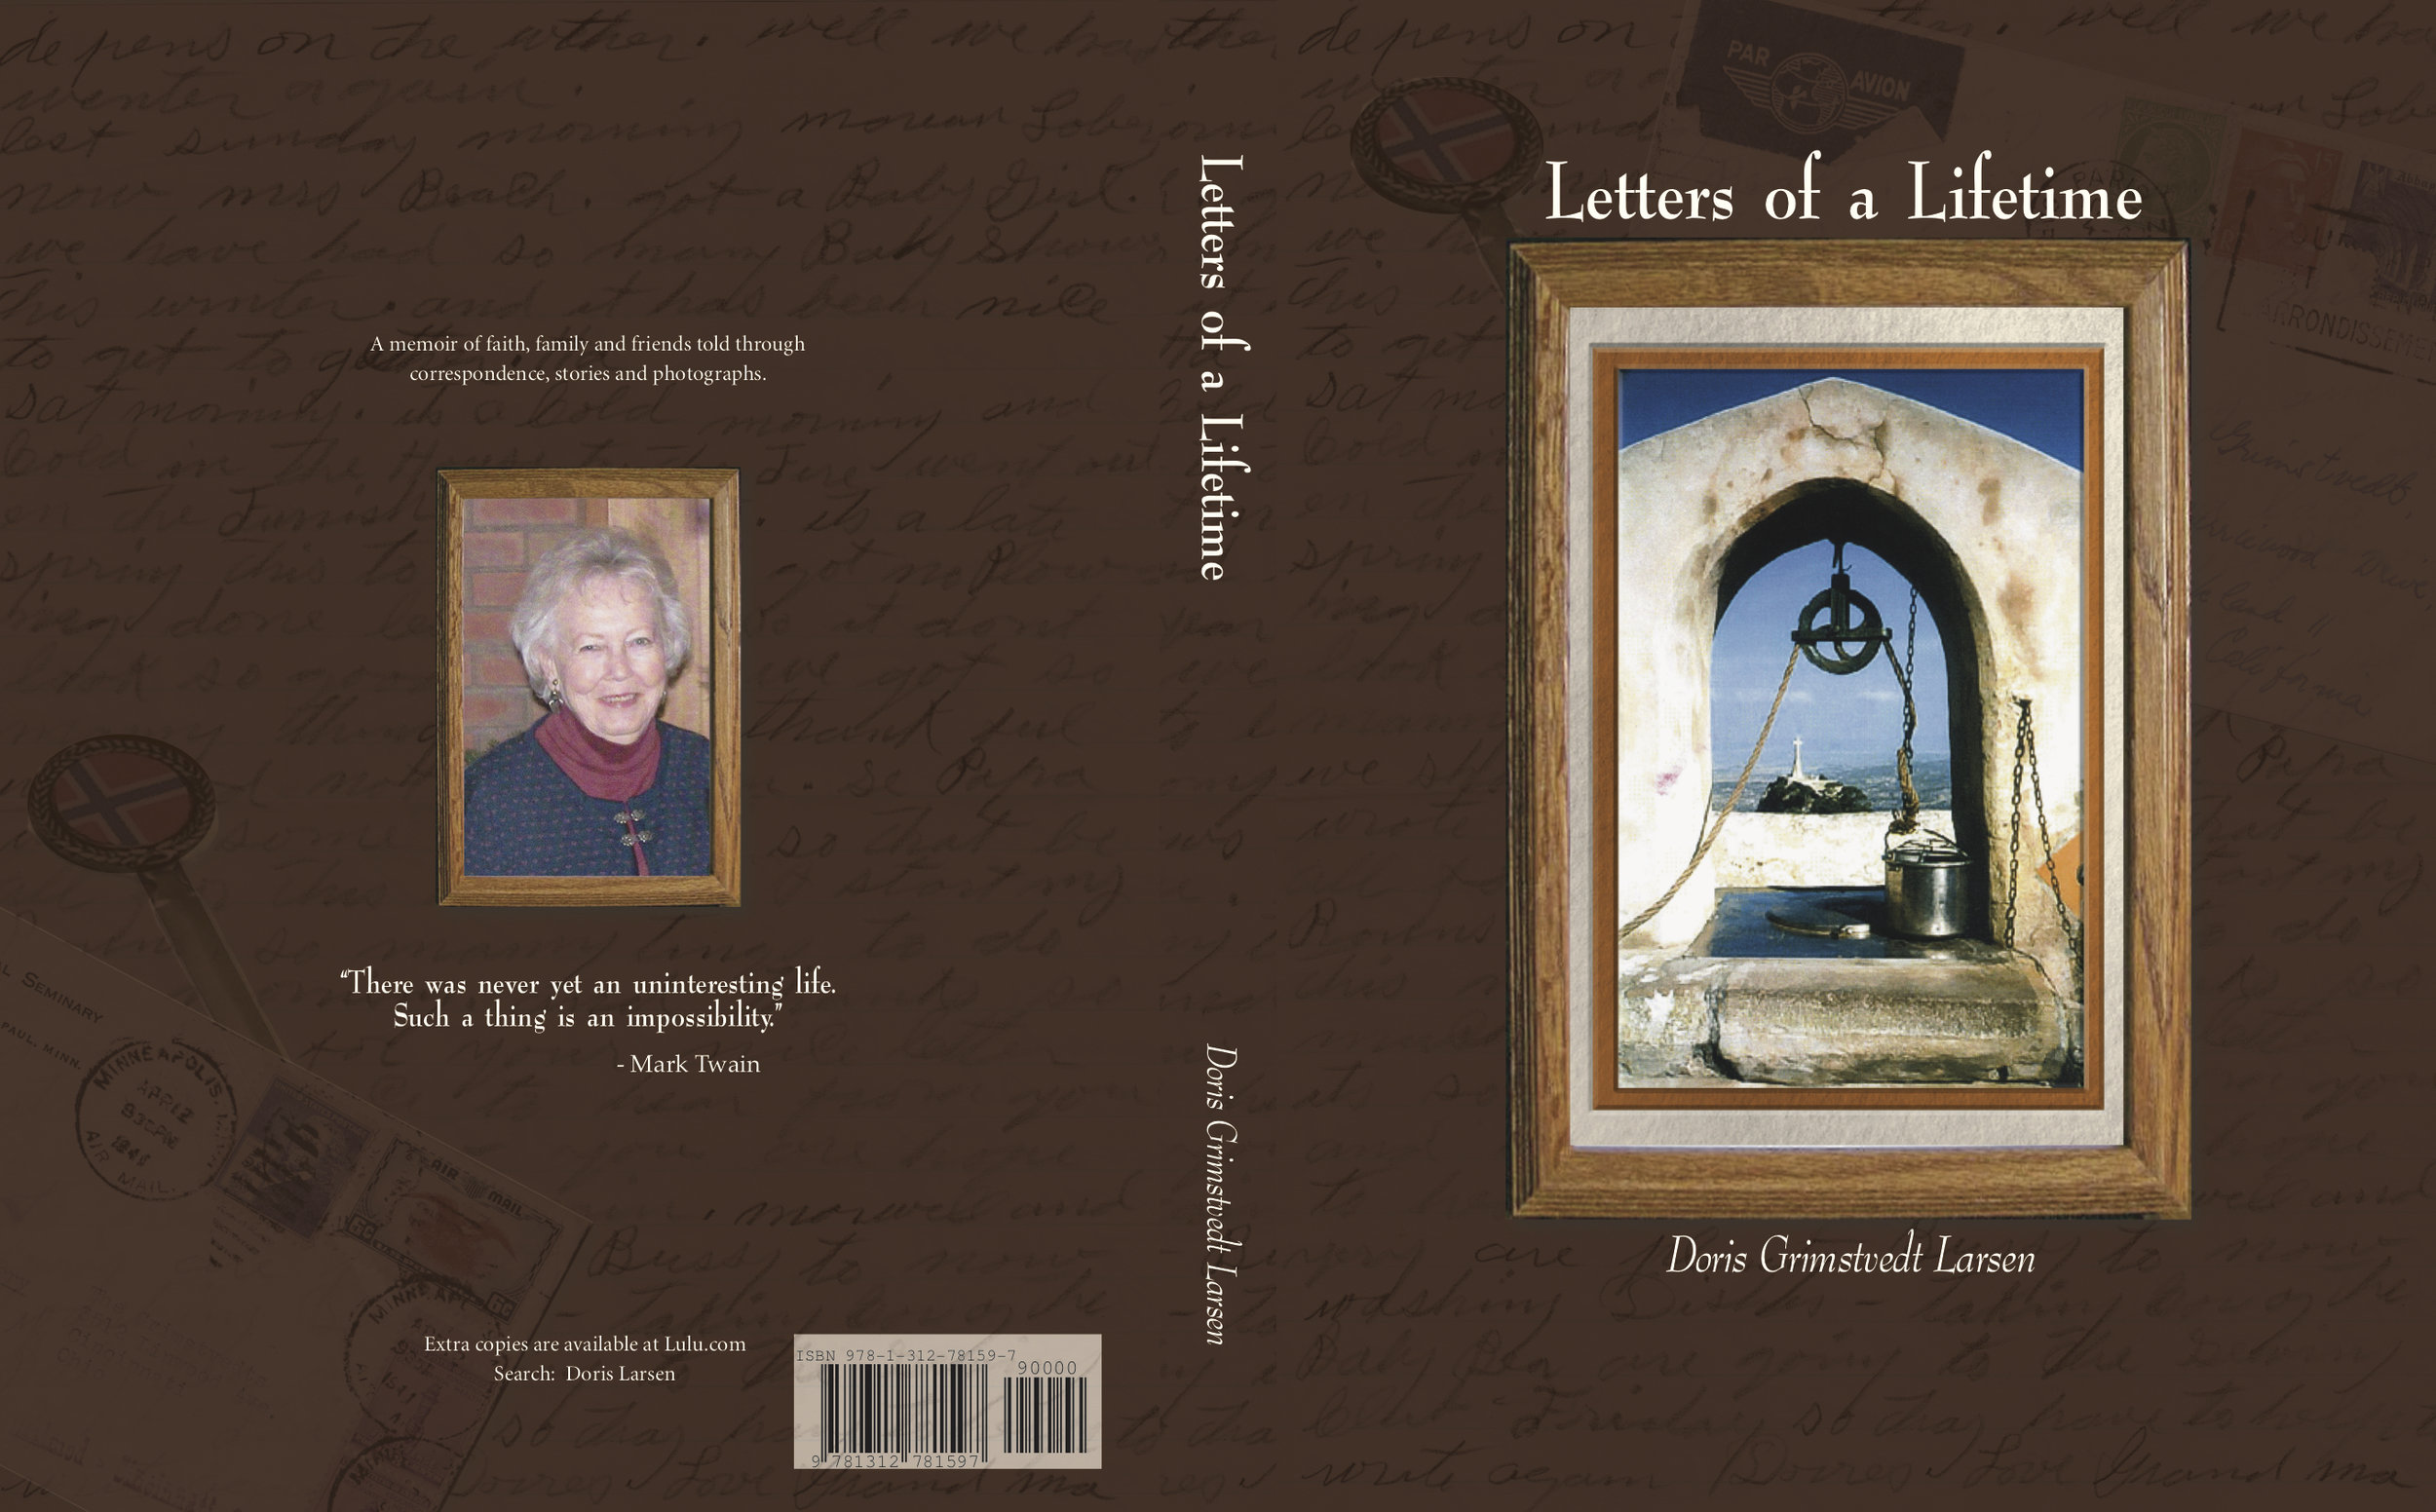 This book started with a collection of annual Christmas letters sent to friends and family. It became so much more, a true legacy for family and friends!